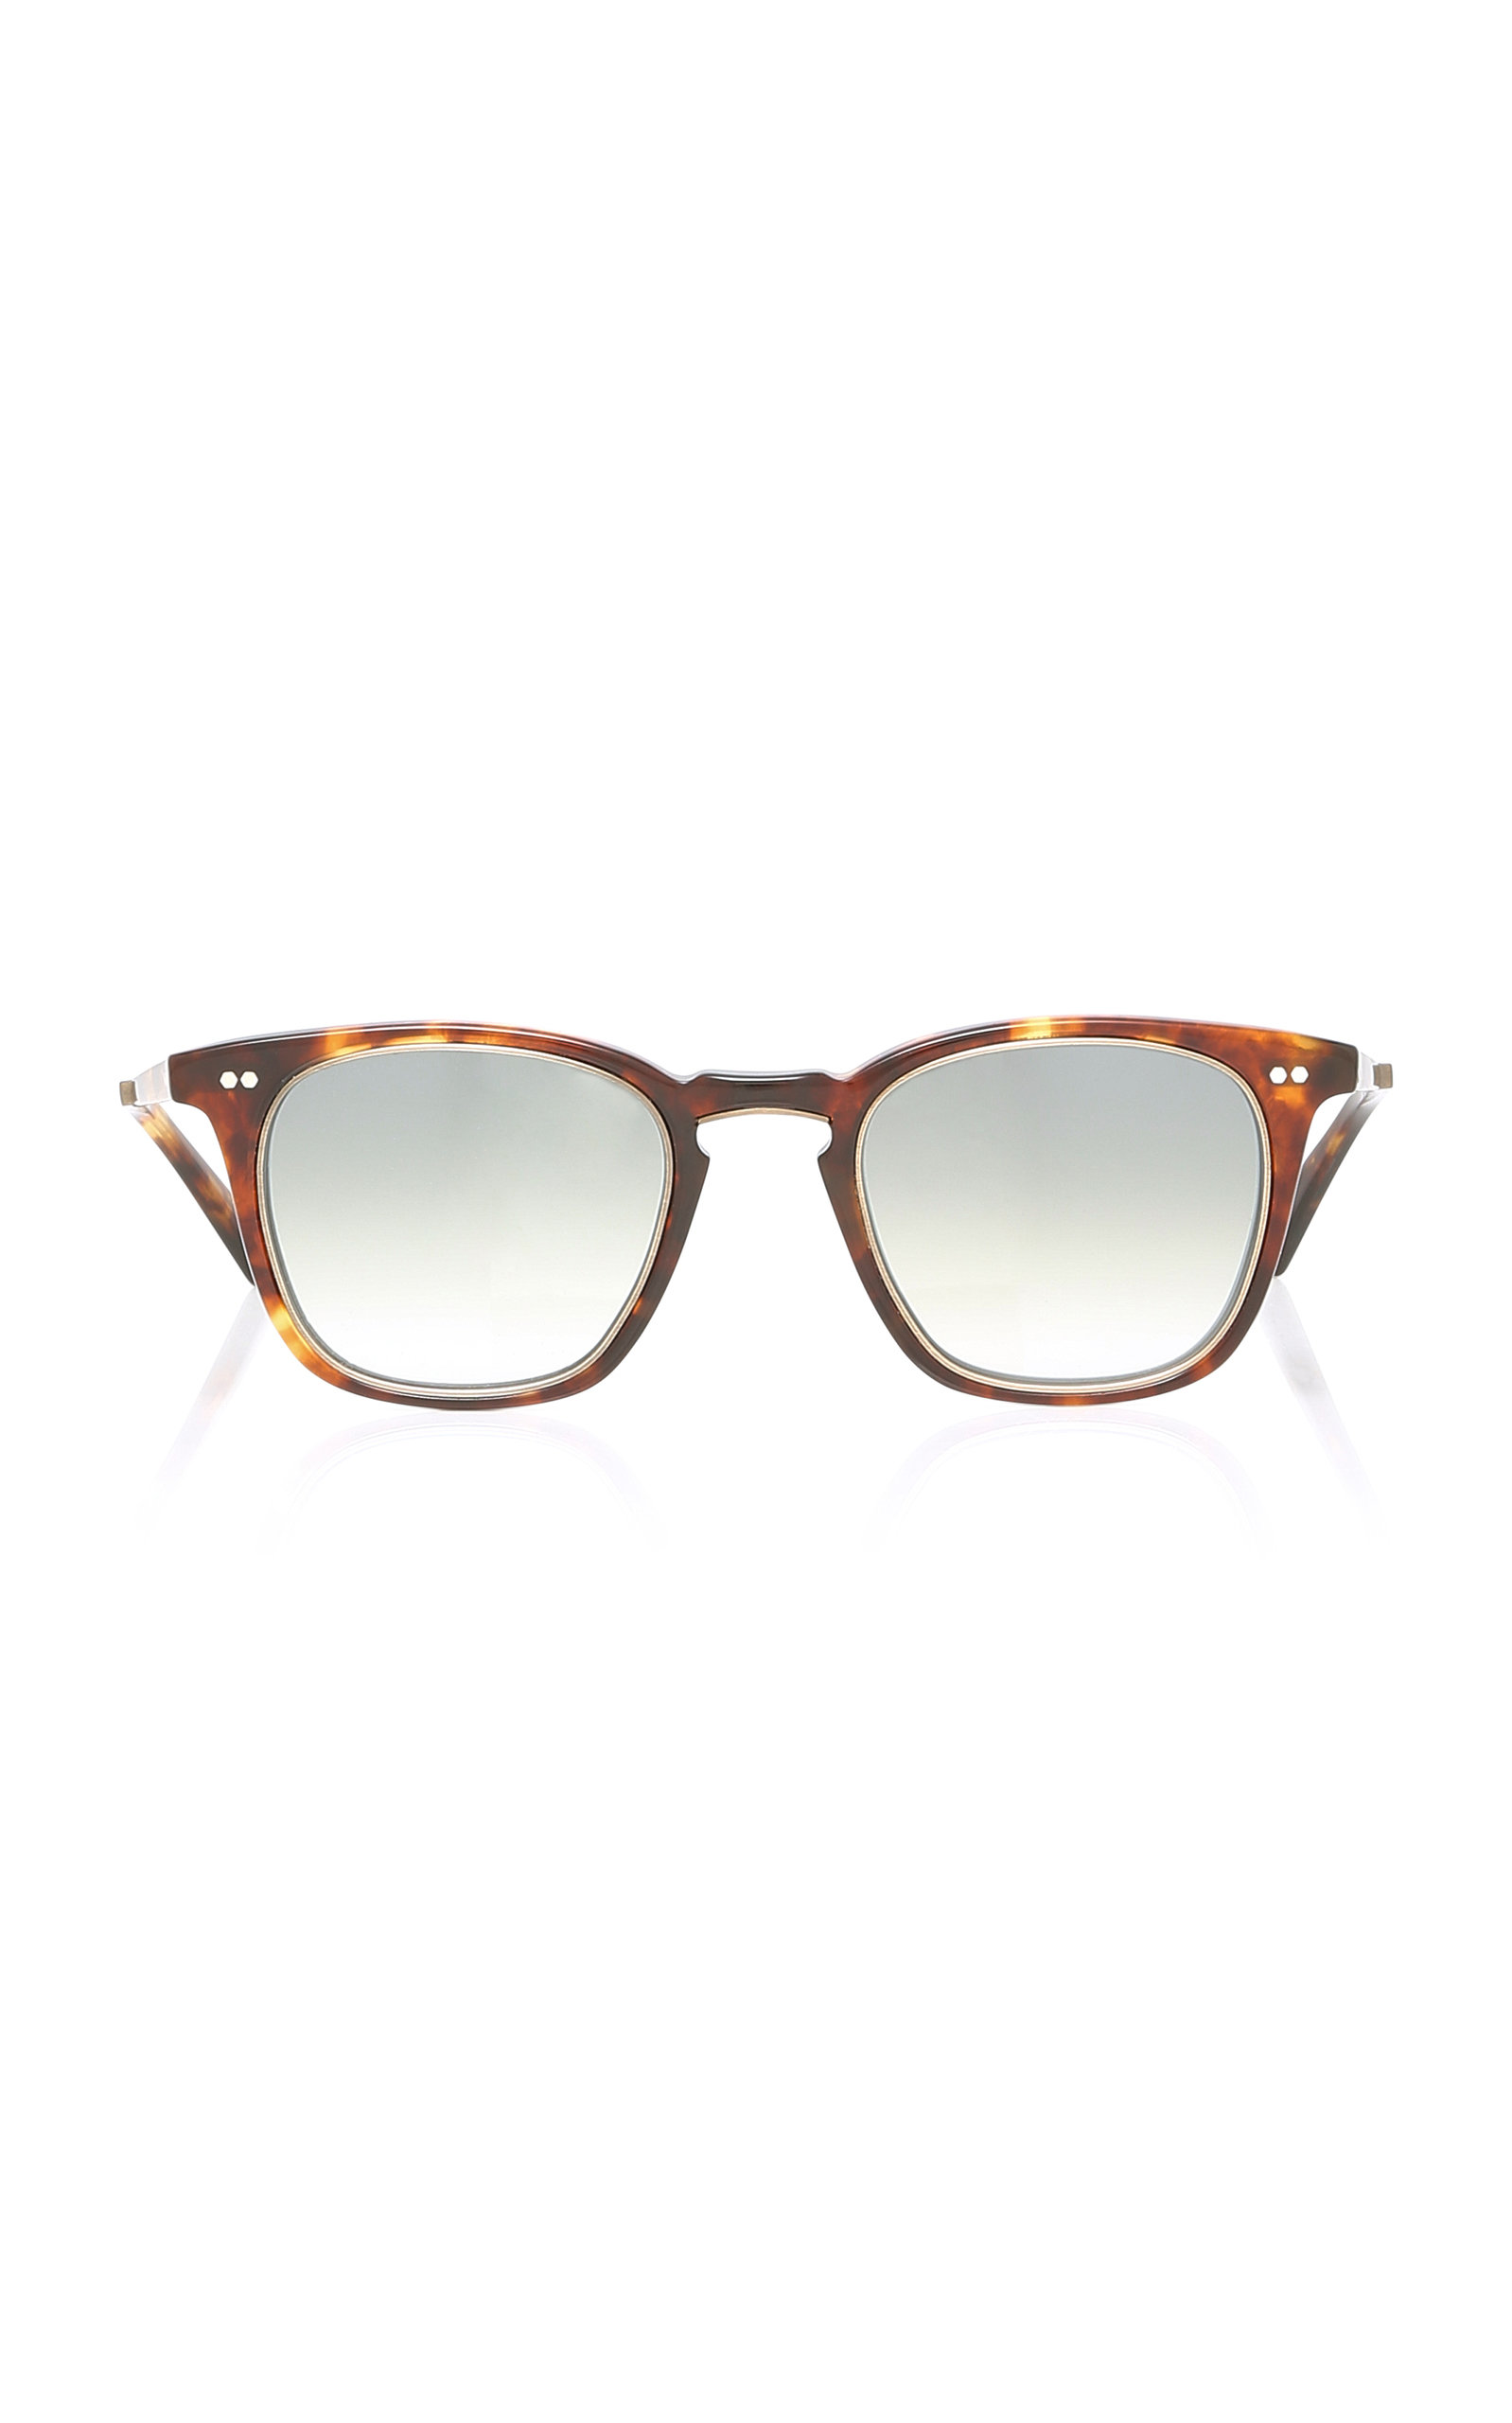 MR. LEIGHT Getty S Square-Frame Sunglasses in Brown